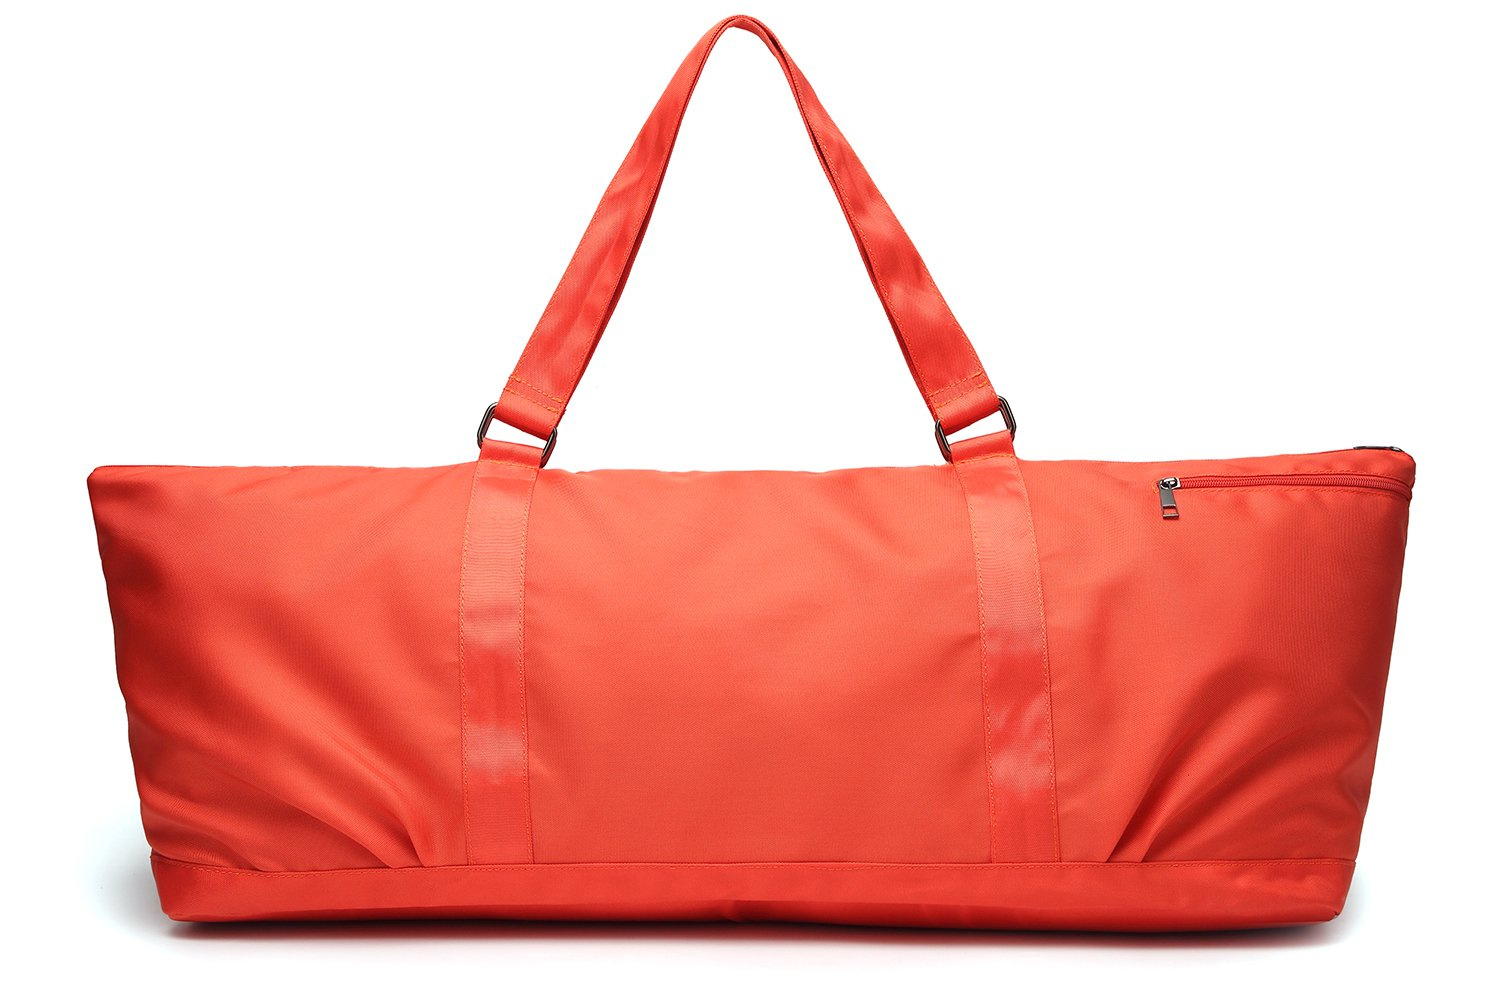 1249bcfec7e7 Elenture Extra Large Yoga Mat Bag Sports Gym Tote Pilates Bag Carry All Kit  Bag (Orange)  Amazon.co.uk  Sports   Outdoors